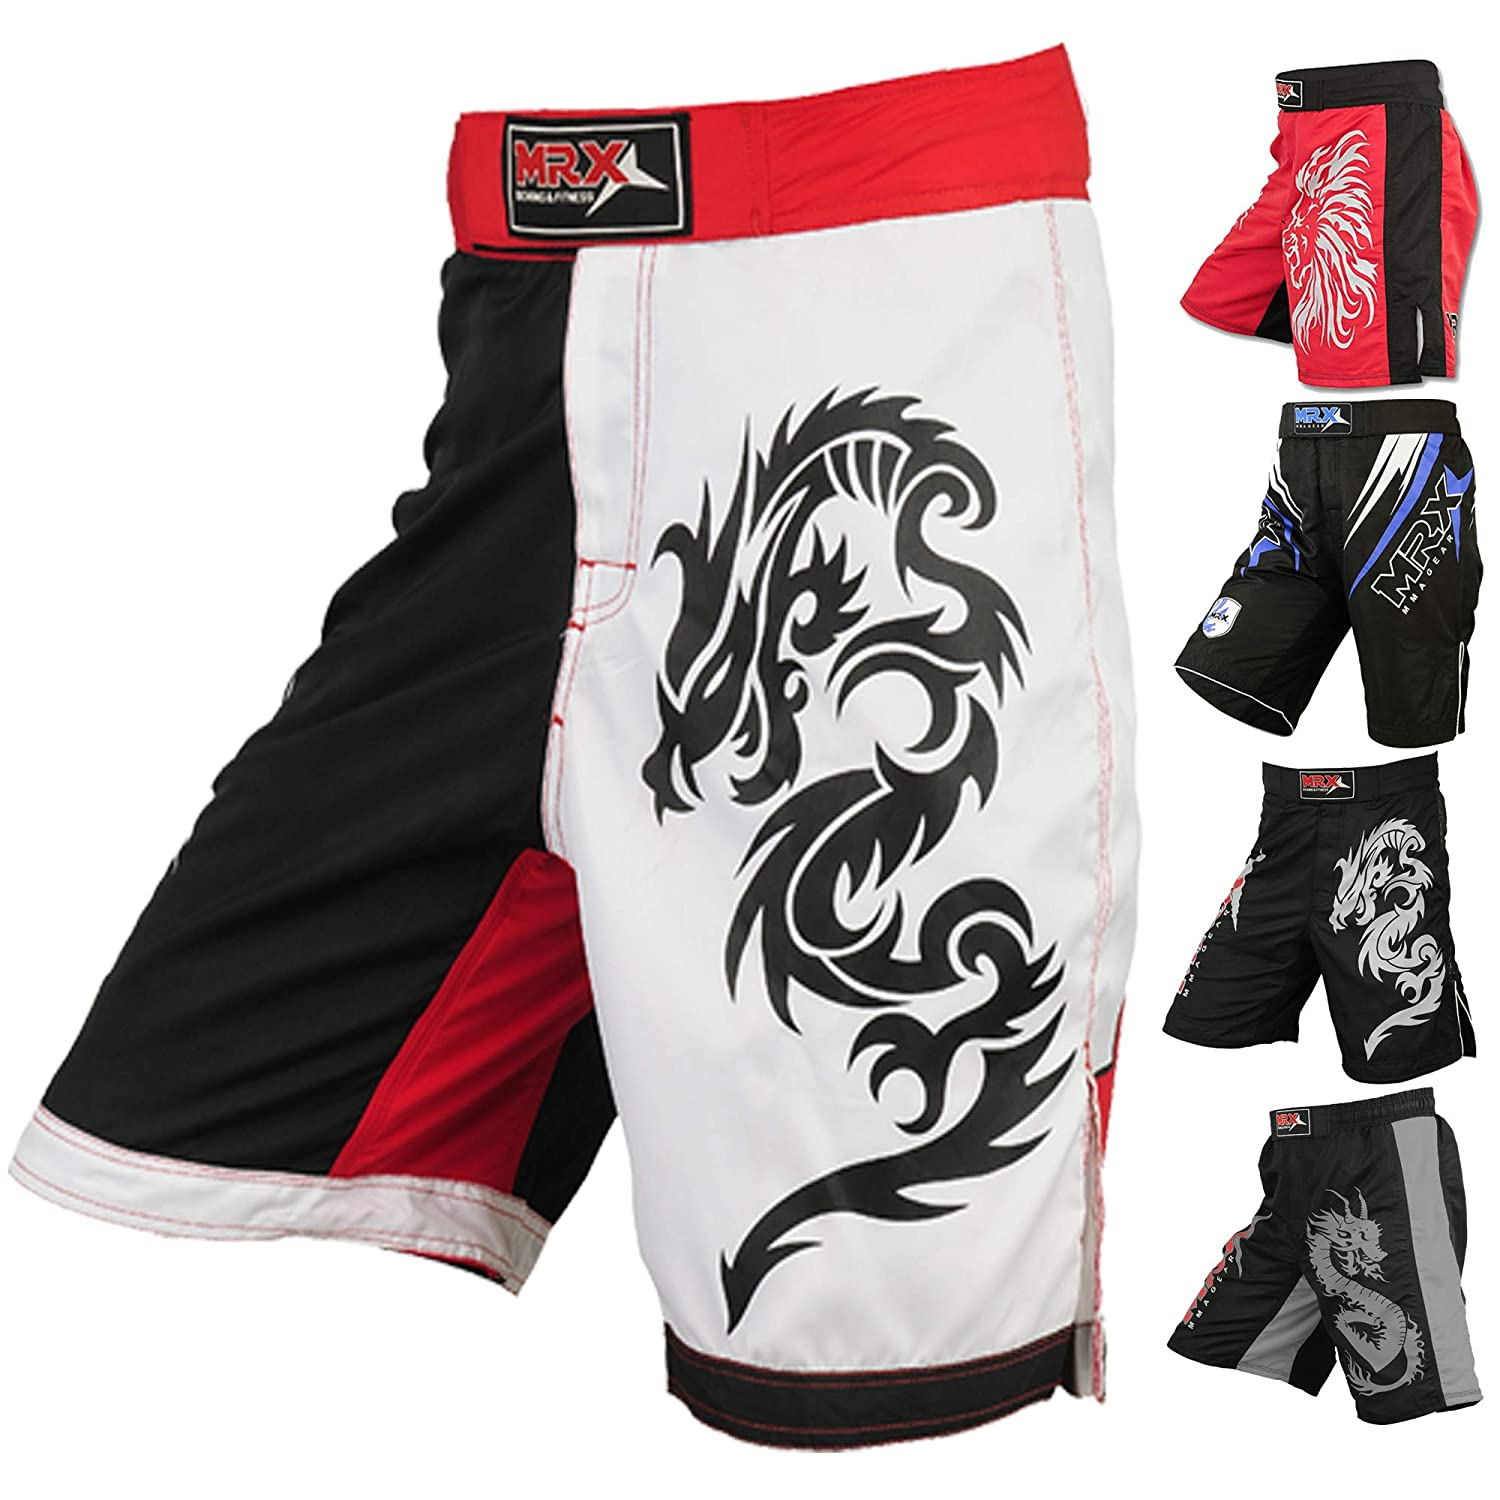 MRX MMA Fight ShortsストレッチPenals Blk / Rd / Wht B00A7ZOAX6 BLK/RED/WHT xx-large